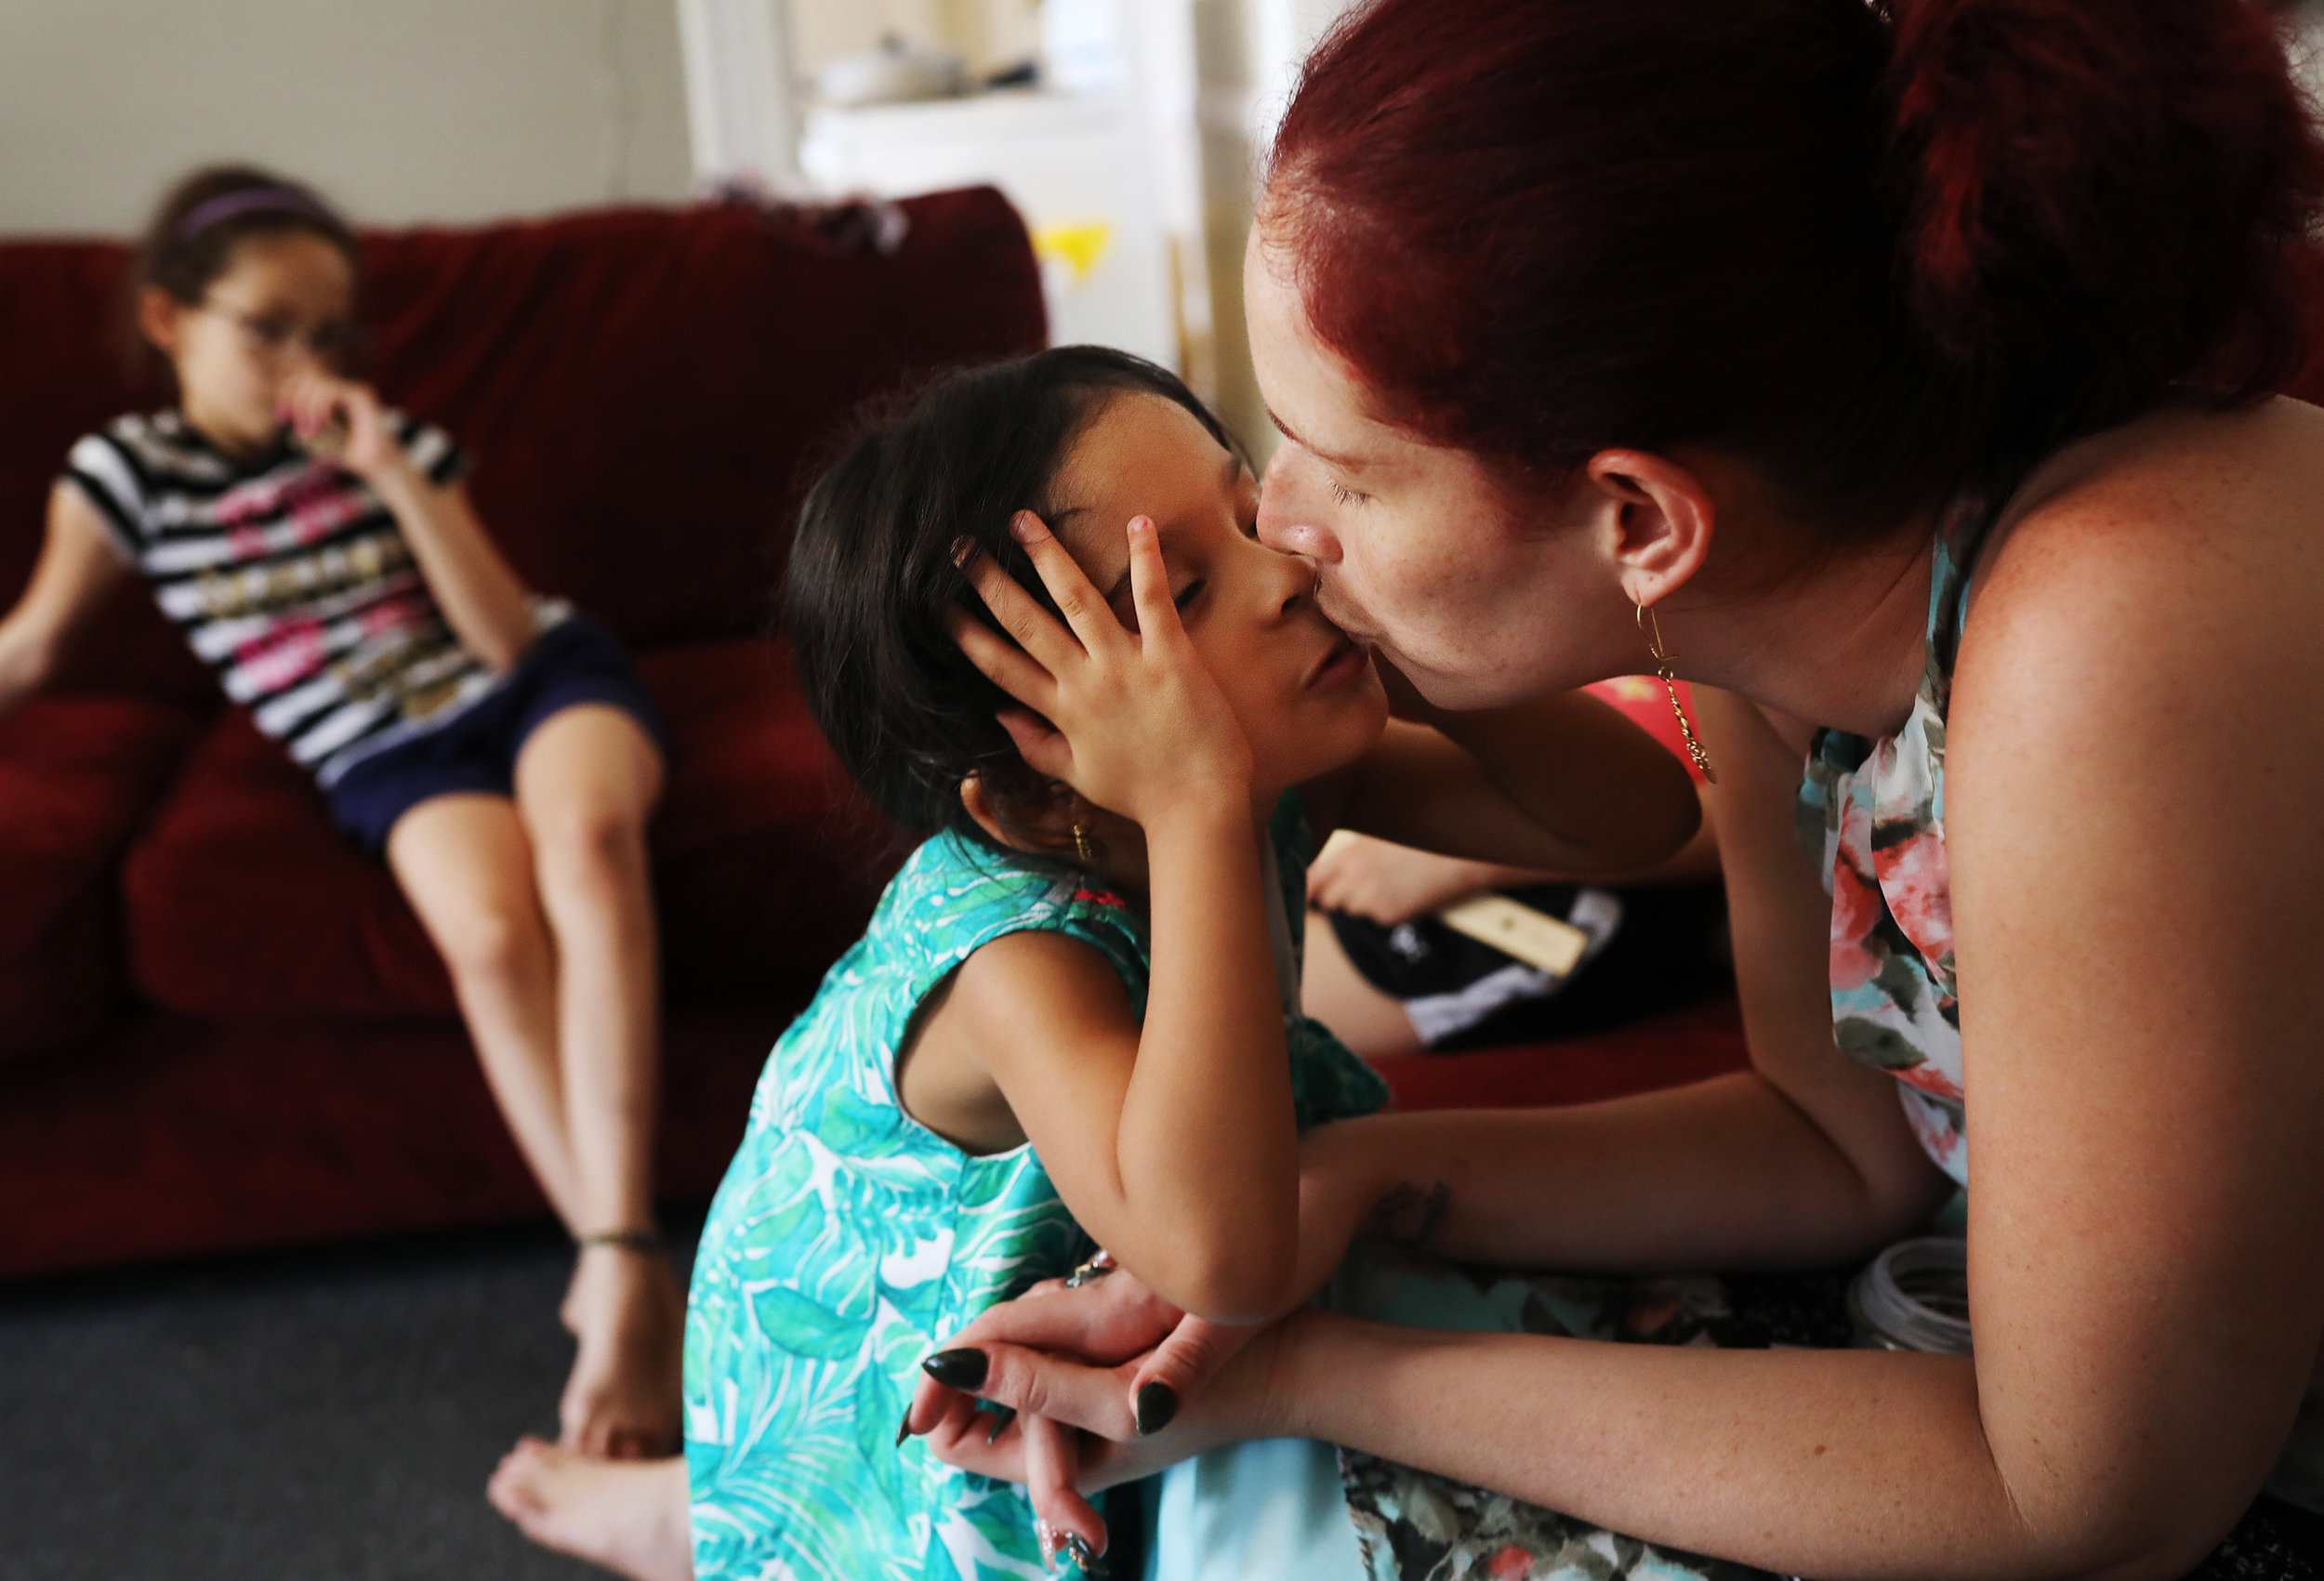 Gennie Garcia, right, kisses her daughter Getzaynie, 4-years-old, while they spend time in their friend's apartment. Gennie was illegally subletting from a friend after moving from Puerto Rica after Hurricane Maria. The landlord has demanded she be out by July 1. She didn't qualify for FEMA's TSA program due to a miscommunication about her family's home on the island. Today she's working to figure out where she's going to go next.